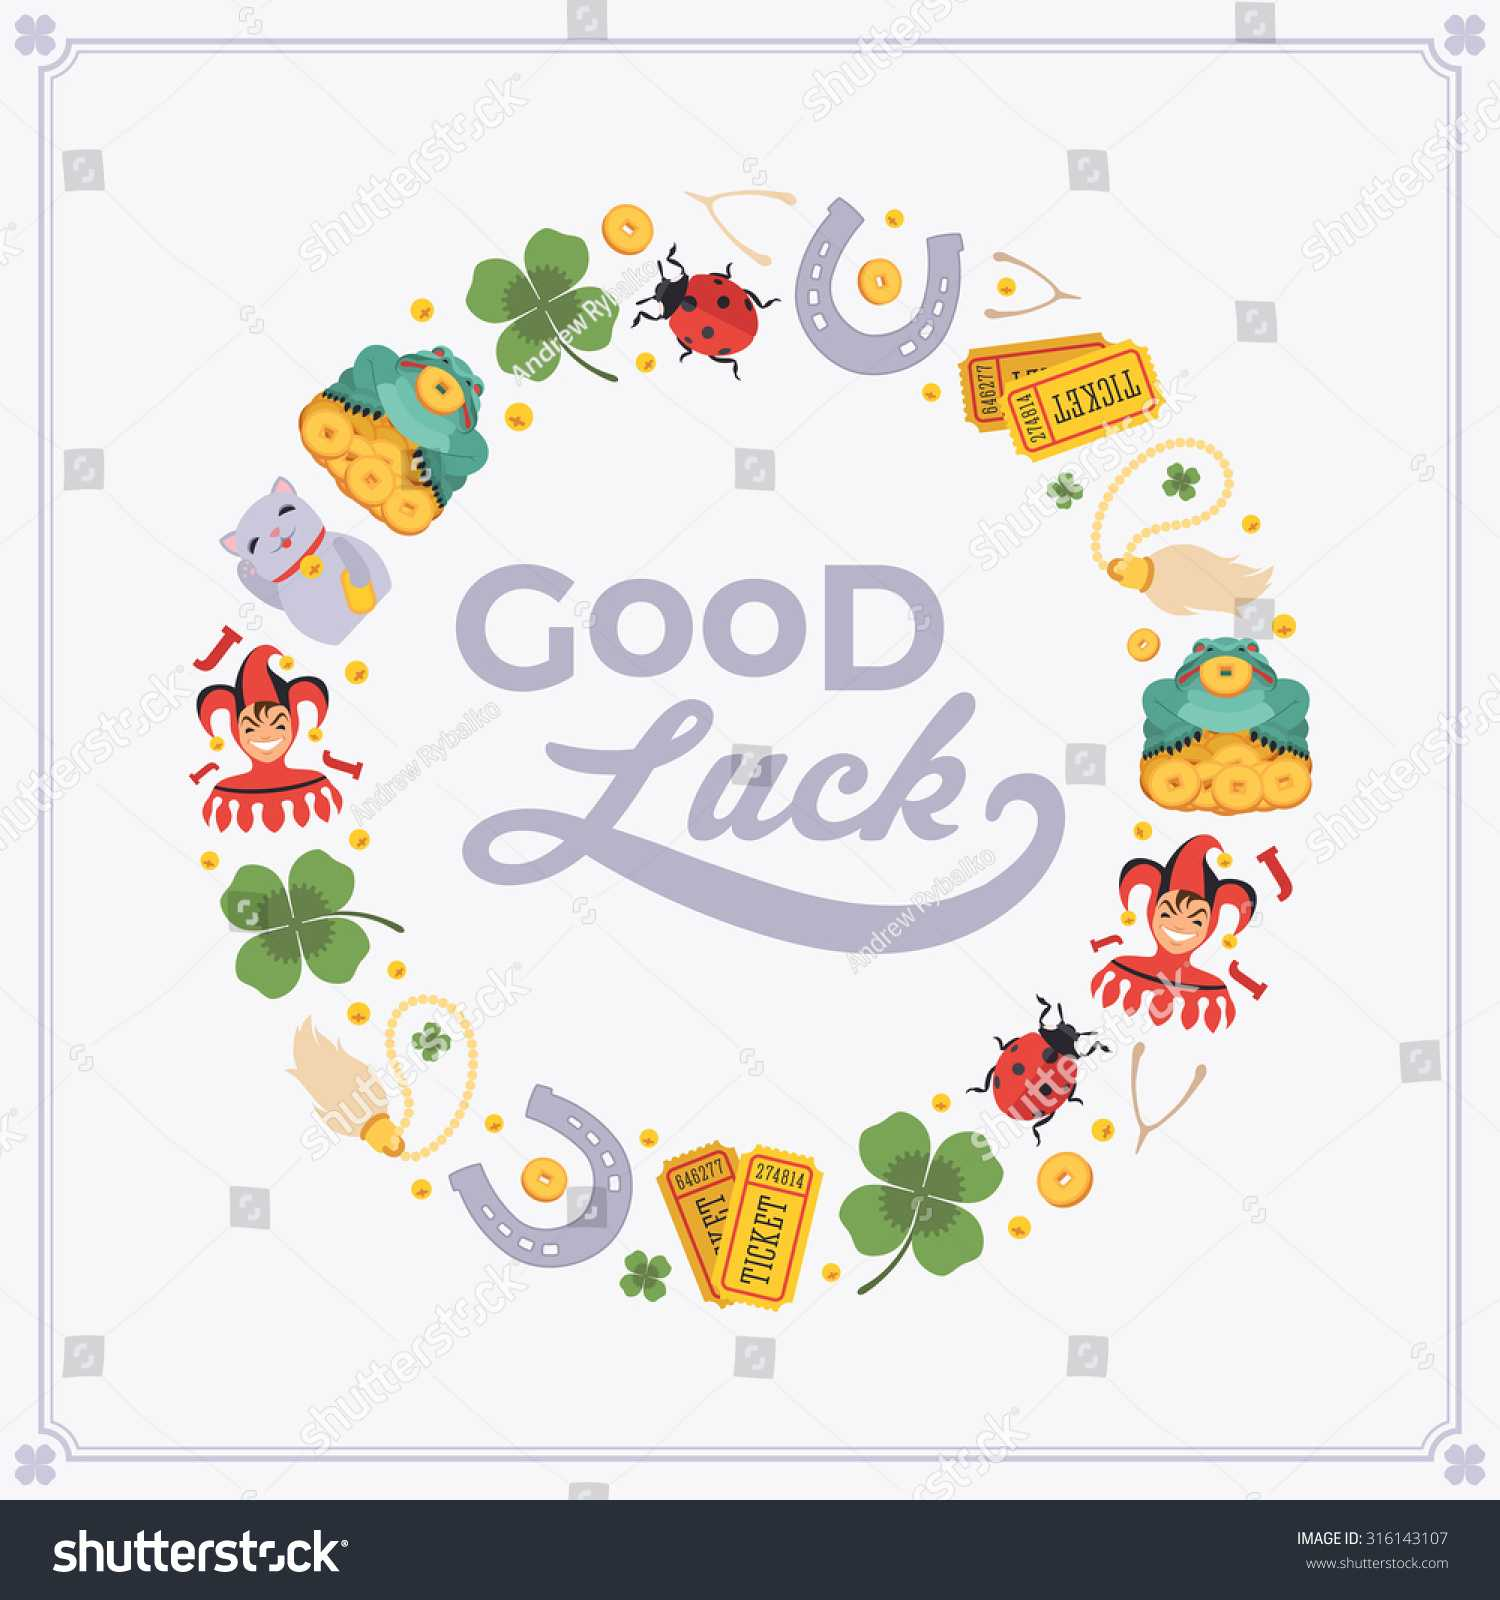 Vector Decorating Design Made Lucky Charms Stock Vector With Good Luck Card Templates